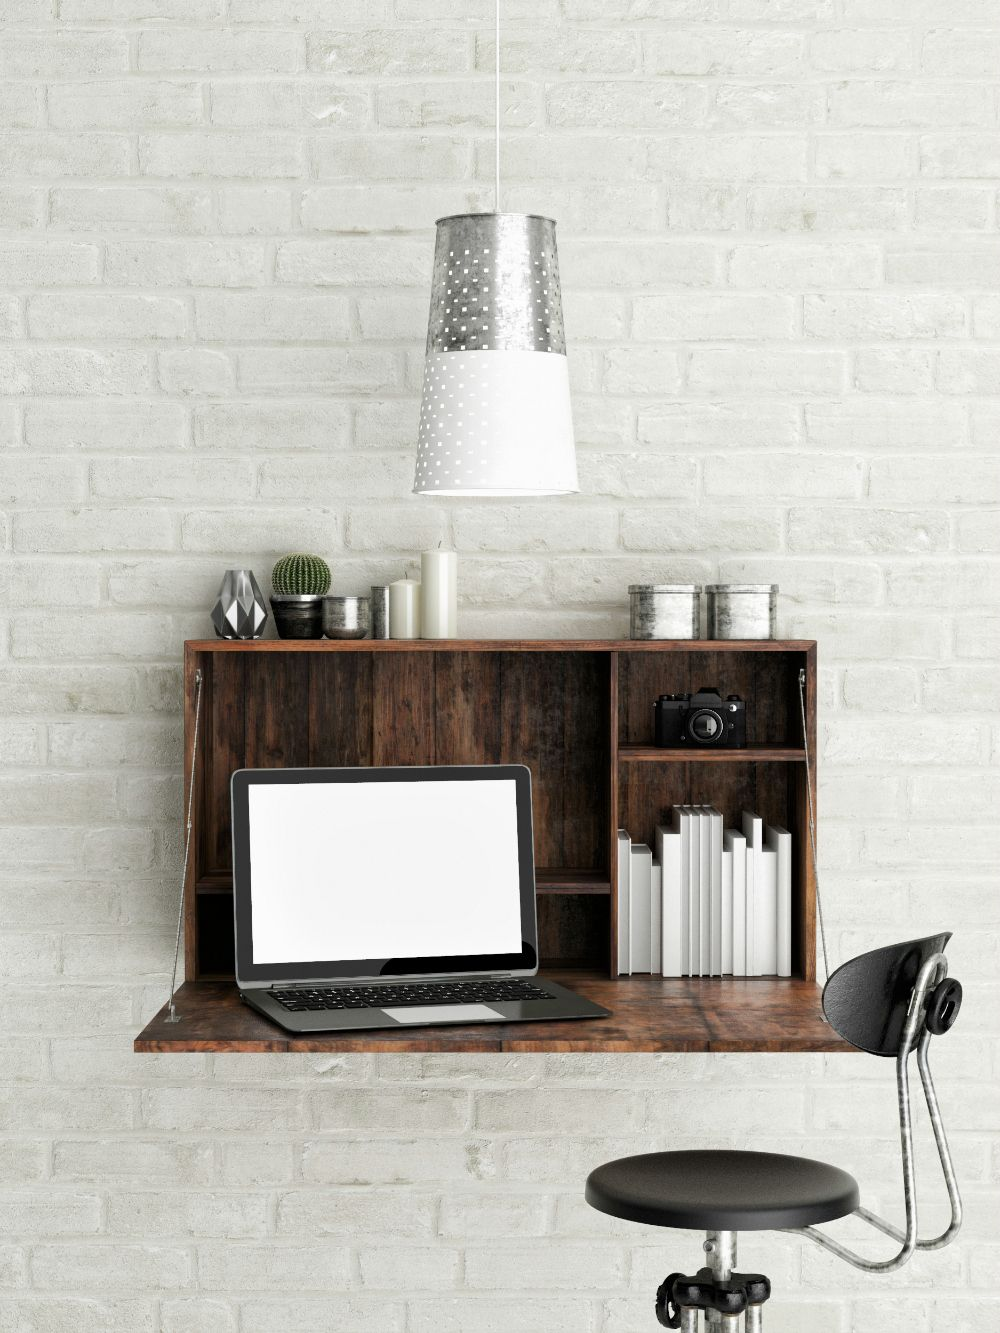 Wall Mounted Desks For Small Spaces 21 Best Wall Mounted Desk Designs For Small Homes Small Space